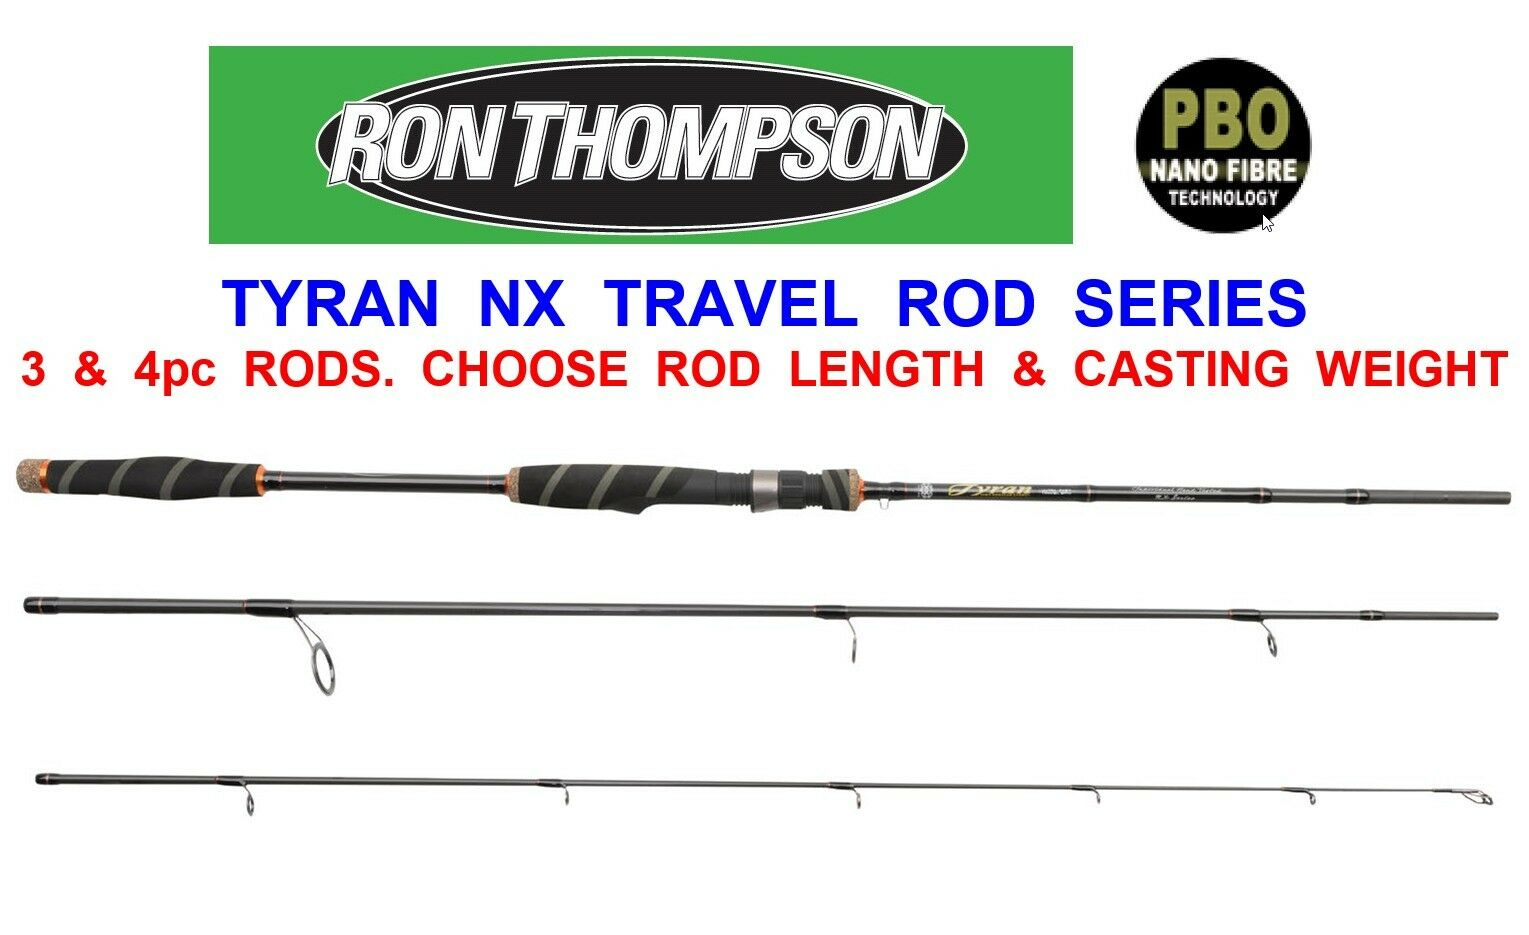 RON THOMSON TYRAN NX NANO CARBON TRAVEL ROD SEA COARSE FISCHEREI BASIS PIKE TROUT